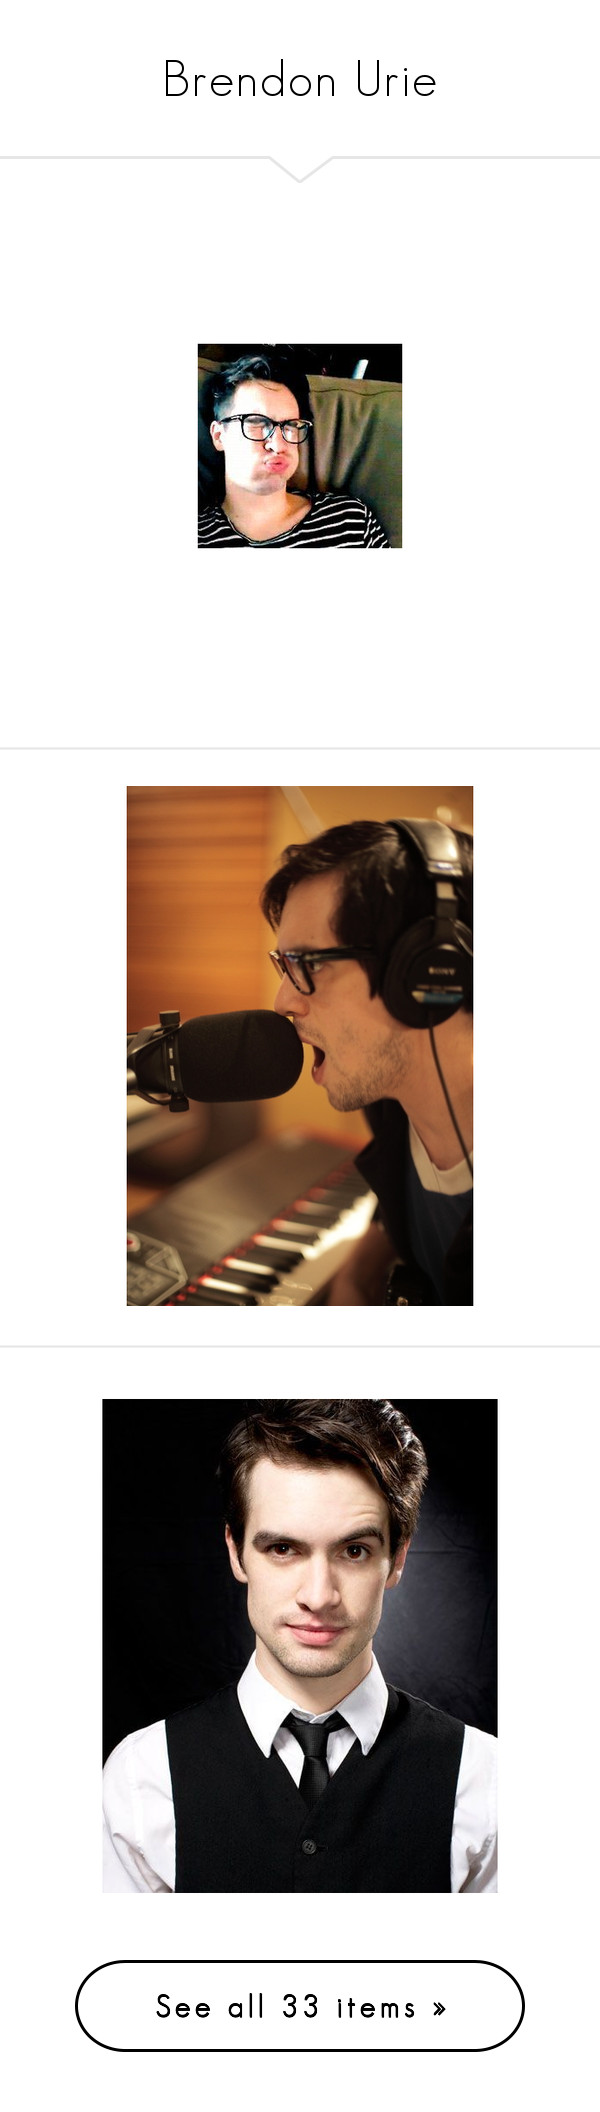 """""""Brendon Urie"""" by no-judge-zone ❤ liked on Polyvore featuring panic at the disco, pictures - brendon urie, people, bands, pictures, fandom related, boys, photo, brendon urie and brendon"""